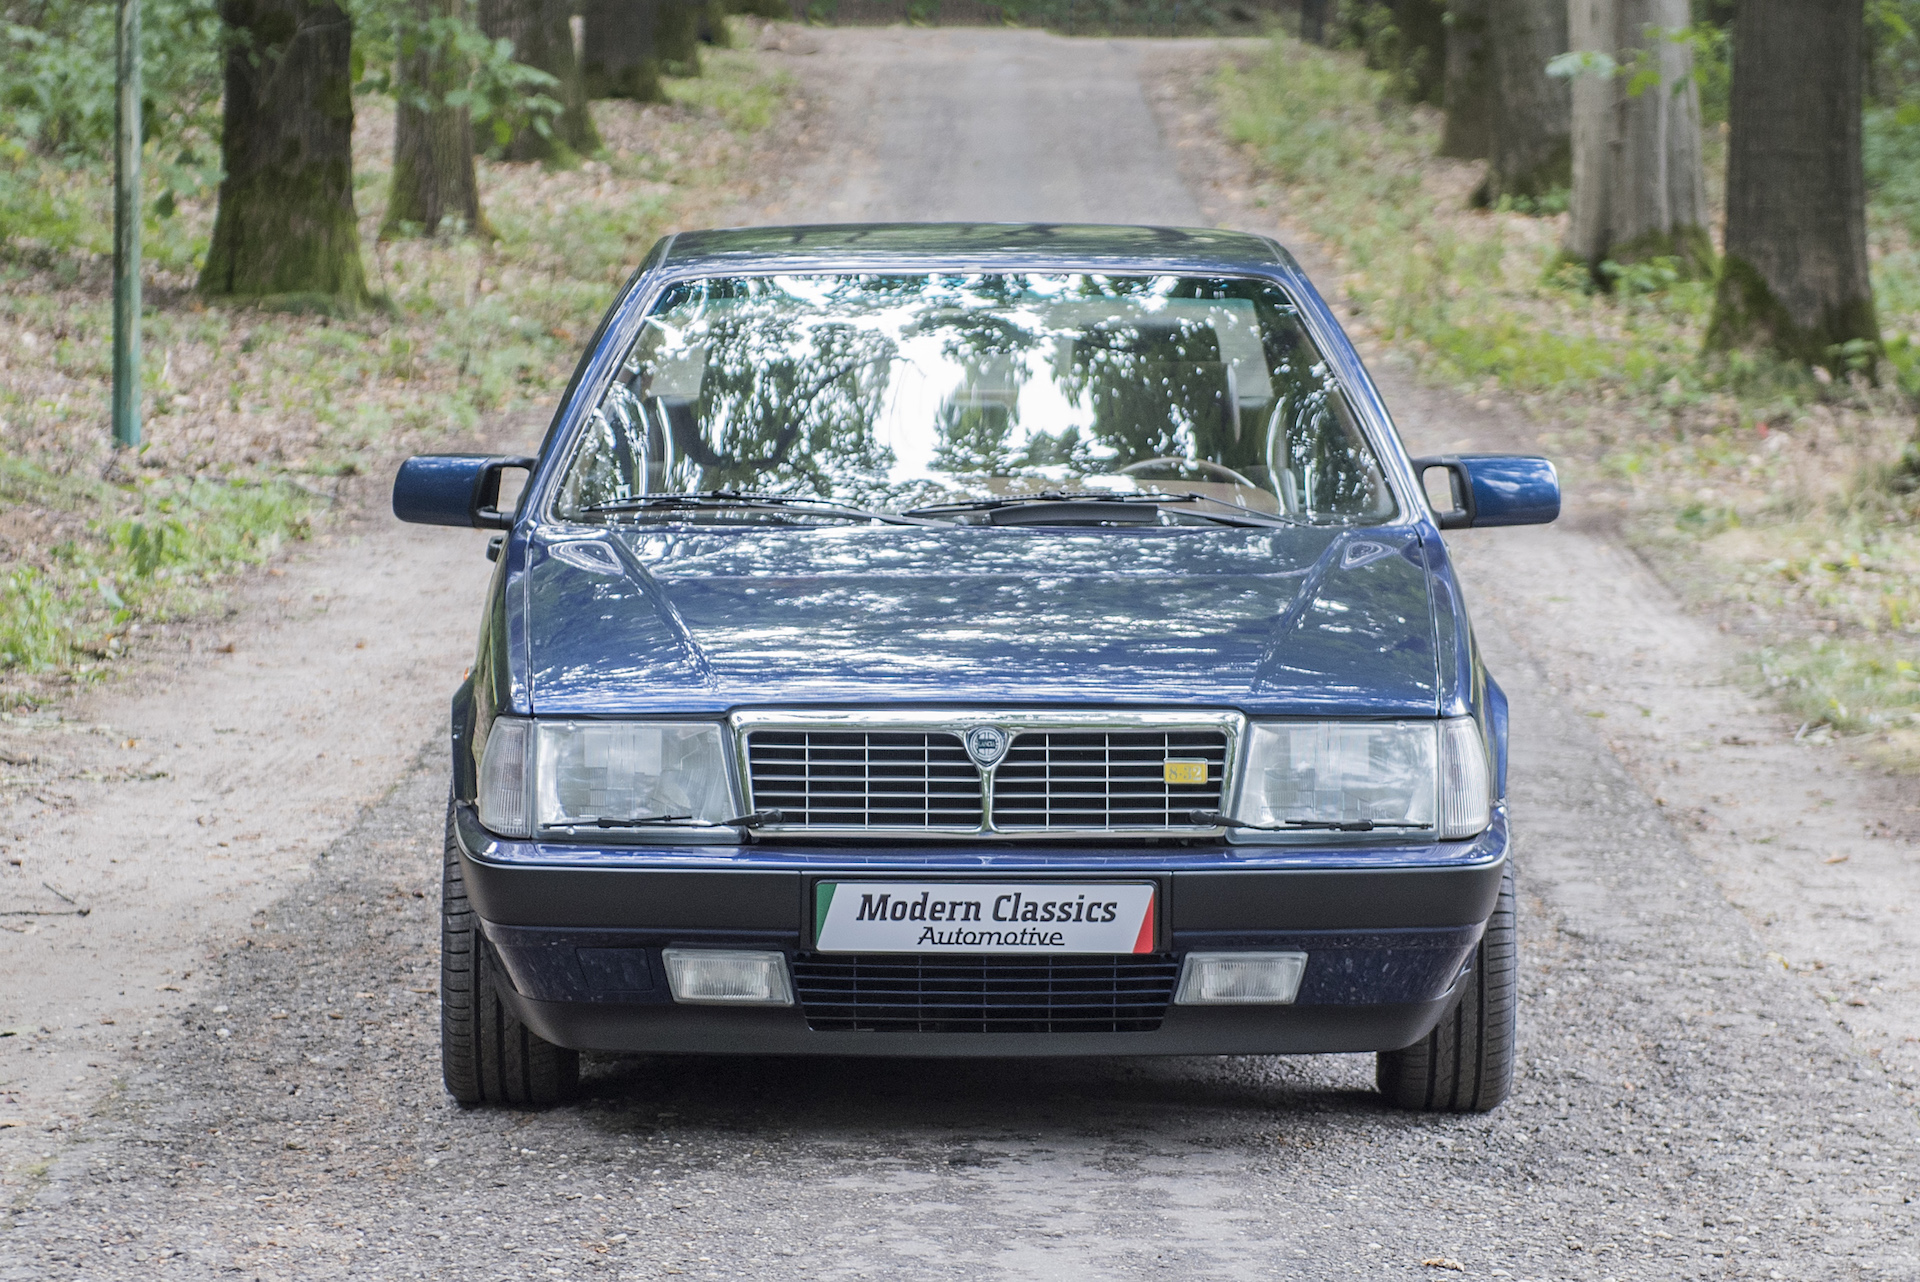 Lancia Thema 8.32 1st series - Modern Classics Automotive